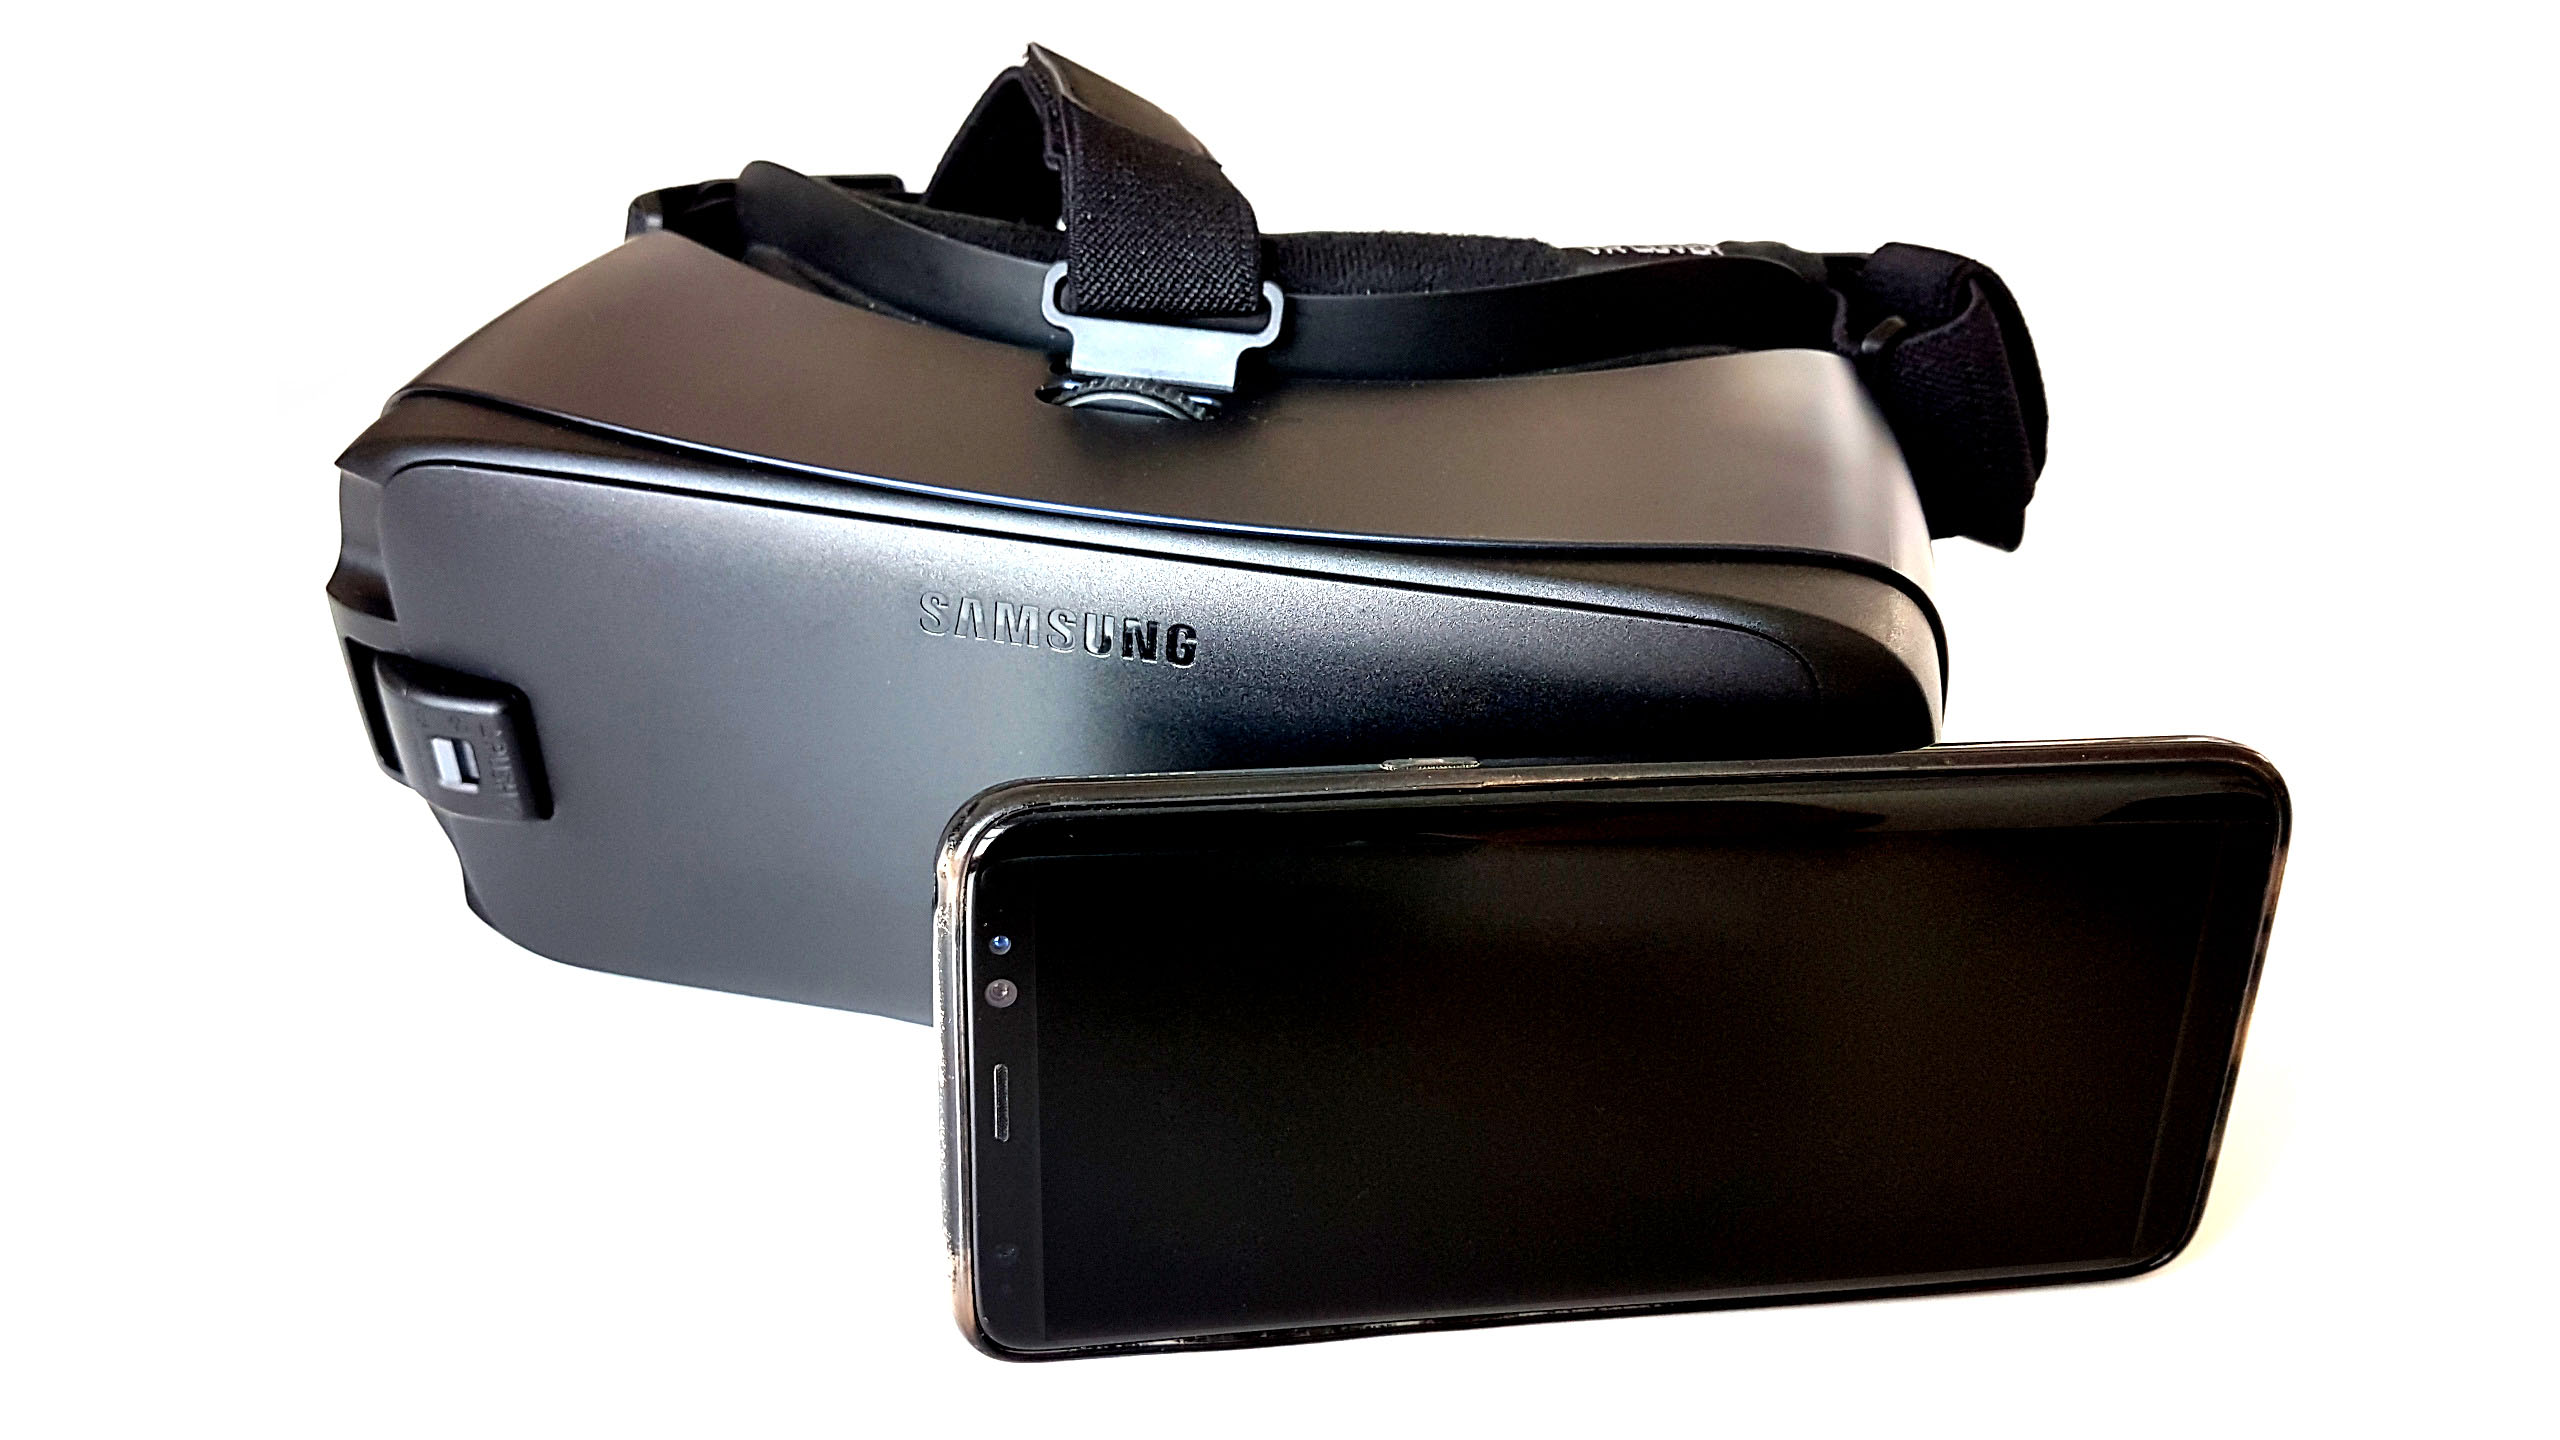 https://triboot.de/wp-content/uploads/2018/04/triboot-mobile-vr-samsung-gear.jpg